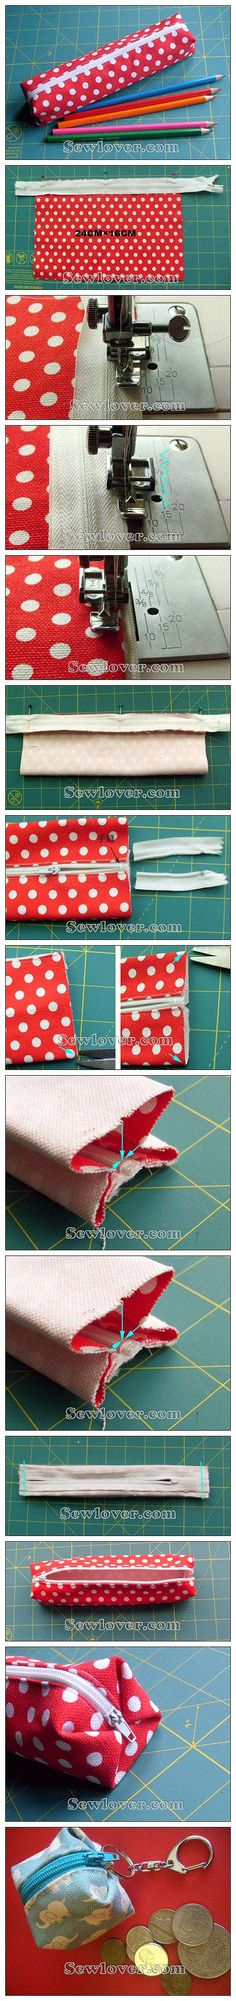 #diy make your own pencil case